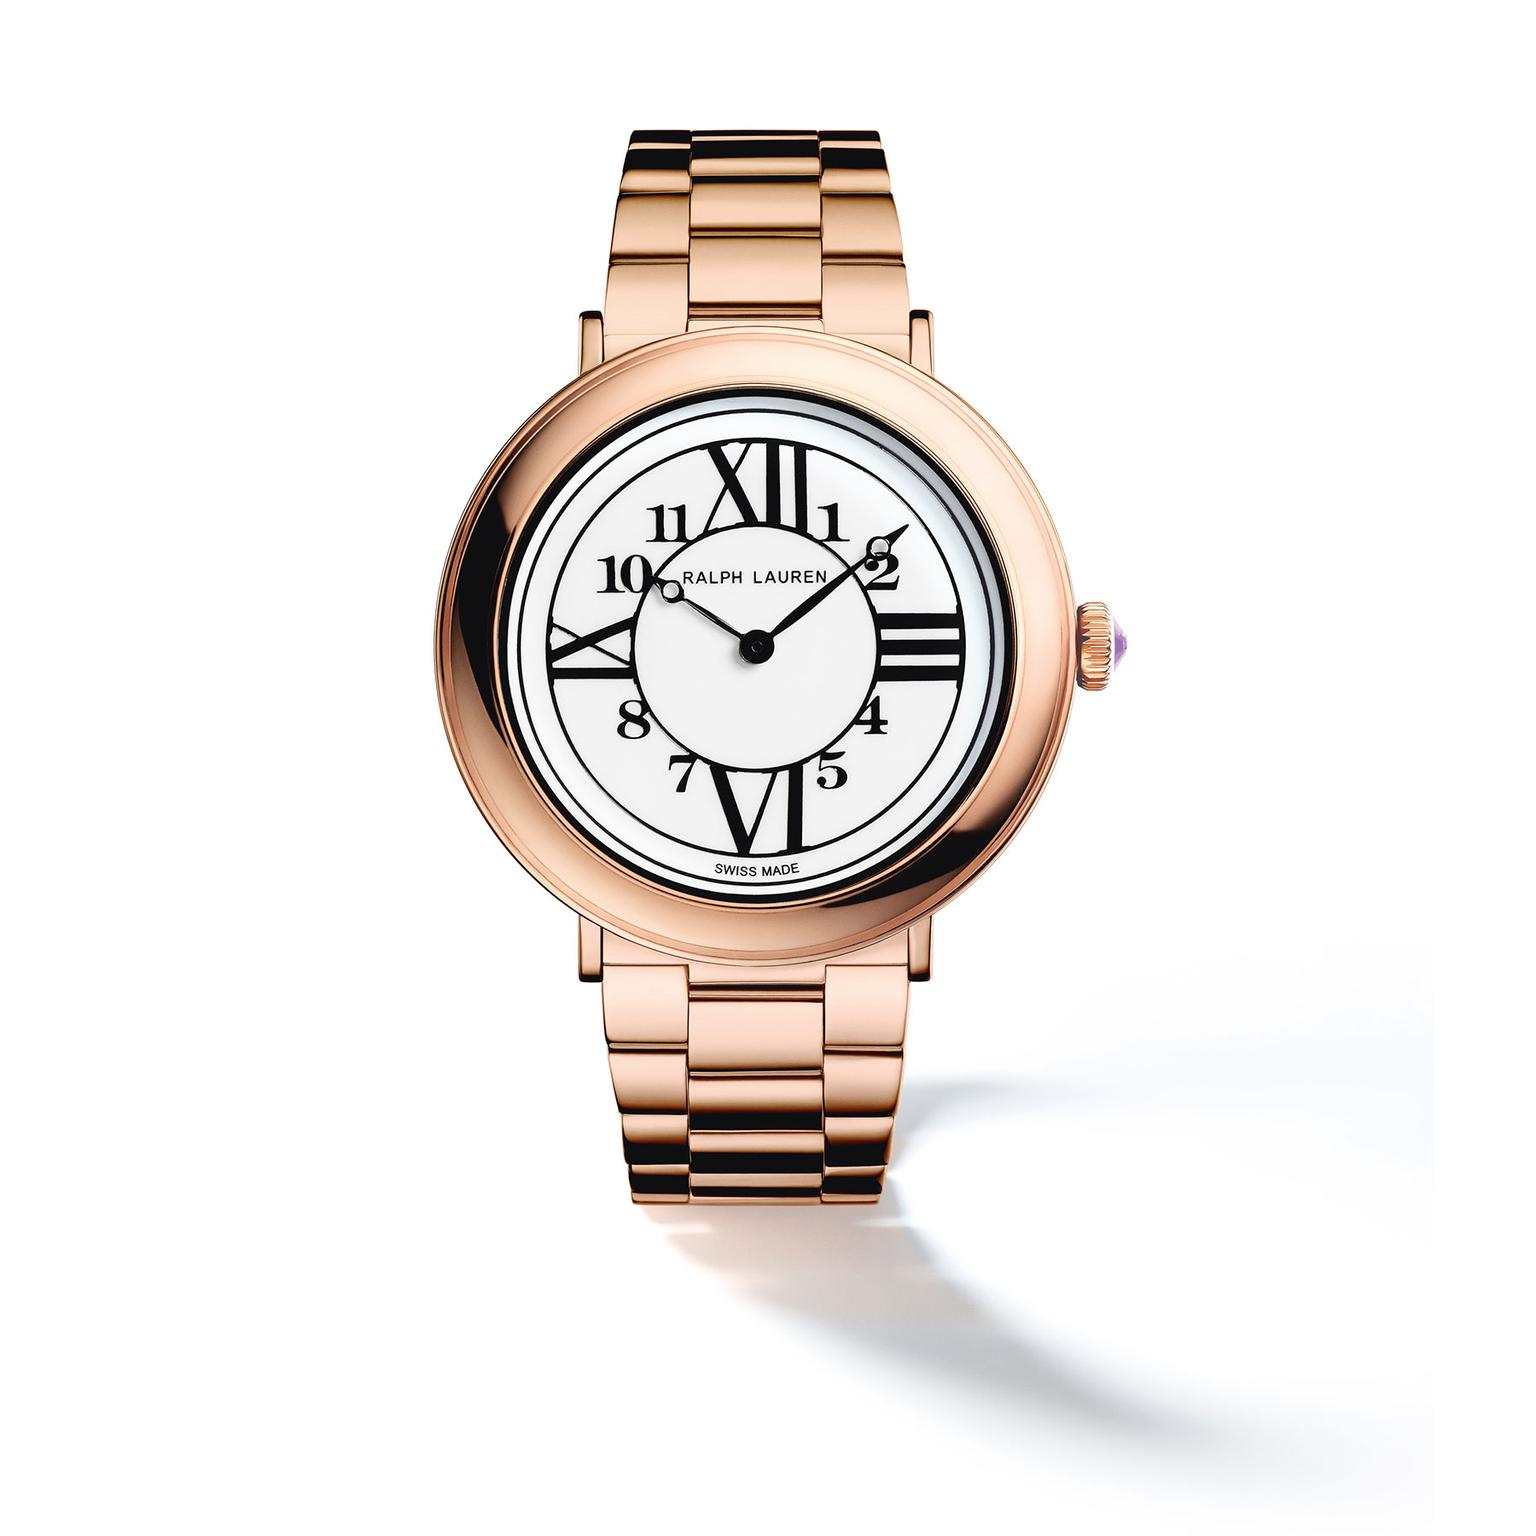 Ralph Lauren RL888 32mm in rose gold